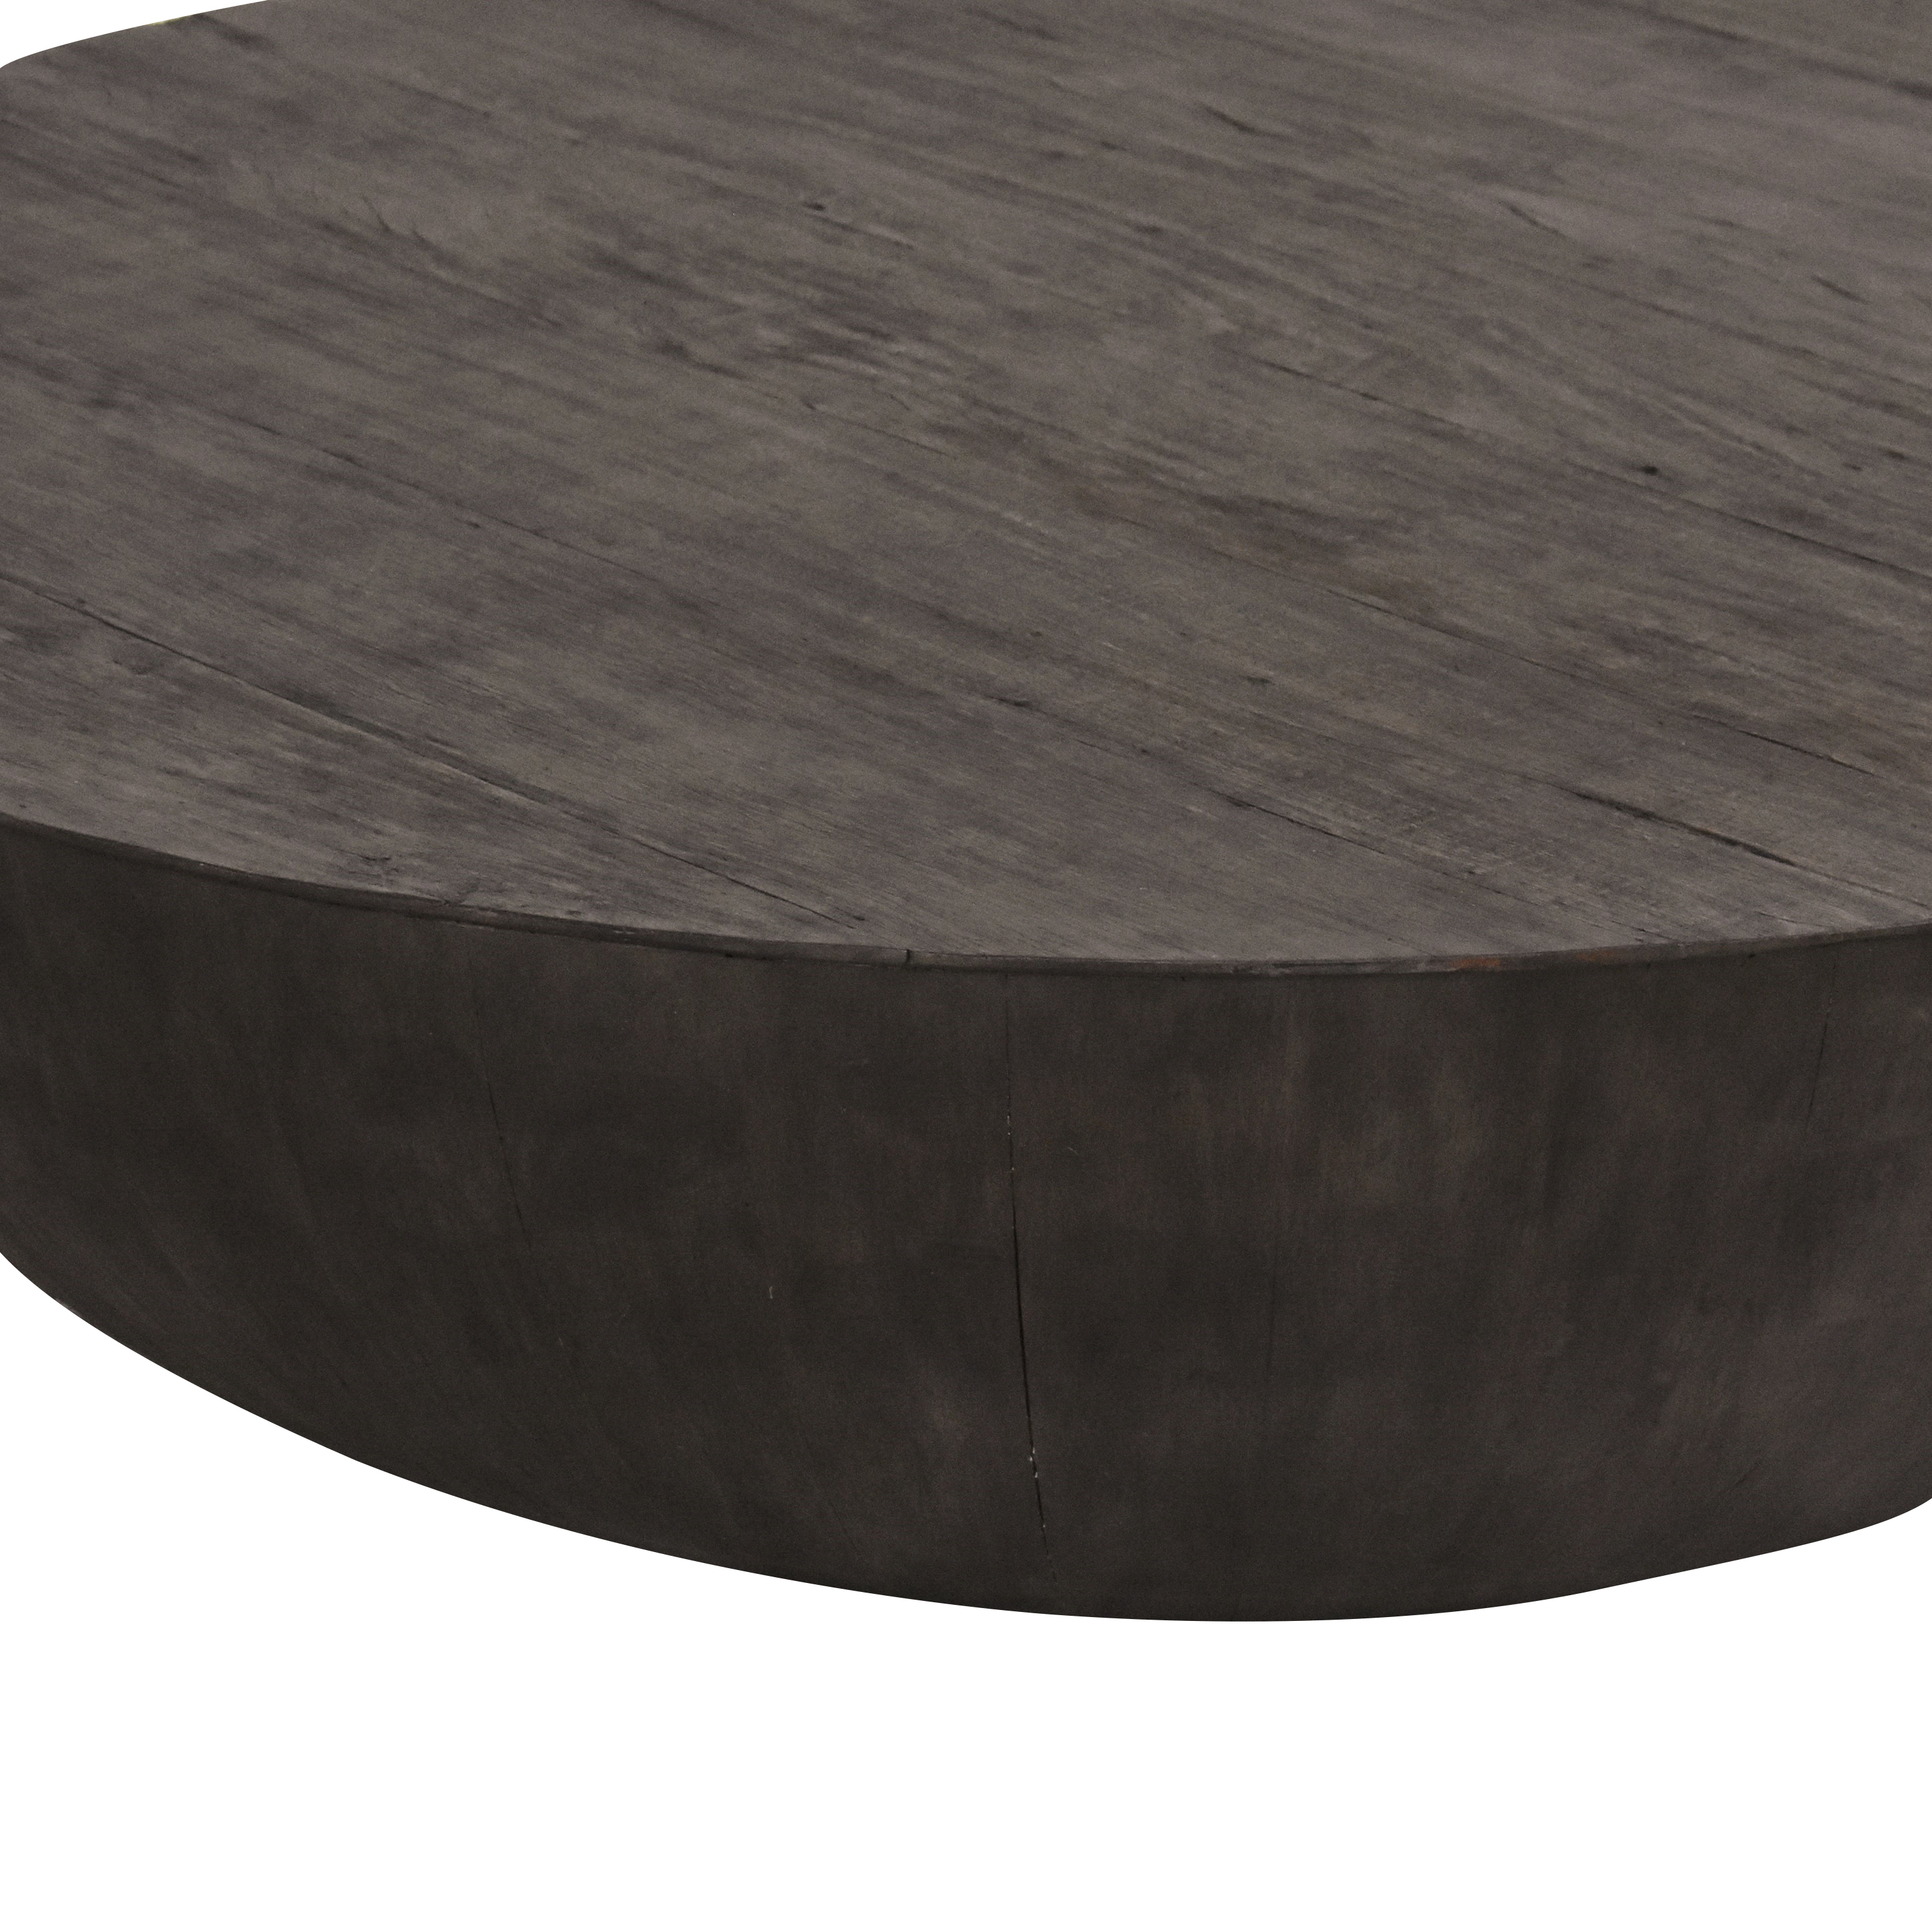 Restoration Hardware Restoration Hardware Sphere Round Coffee Table Coffee Tables